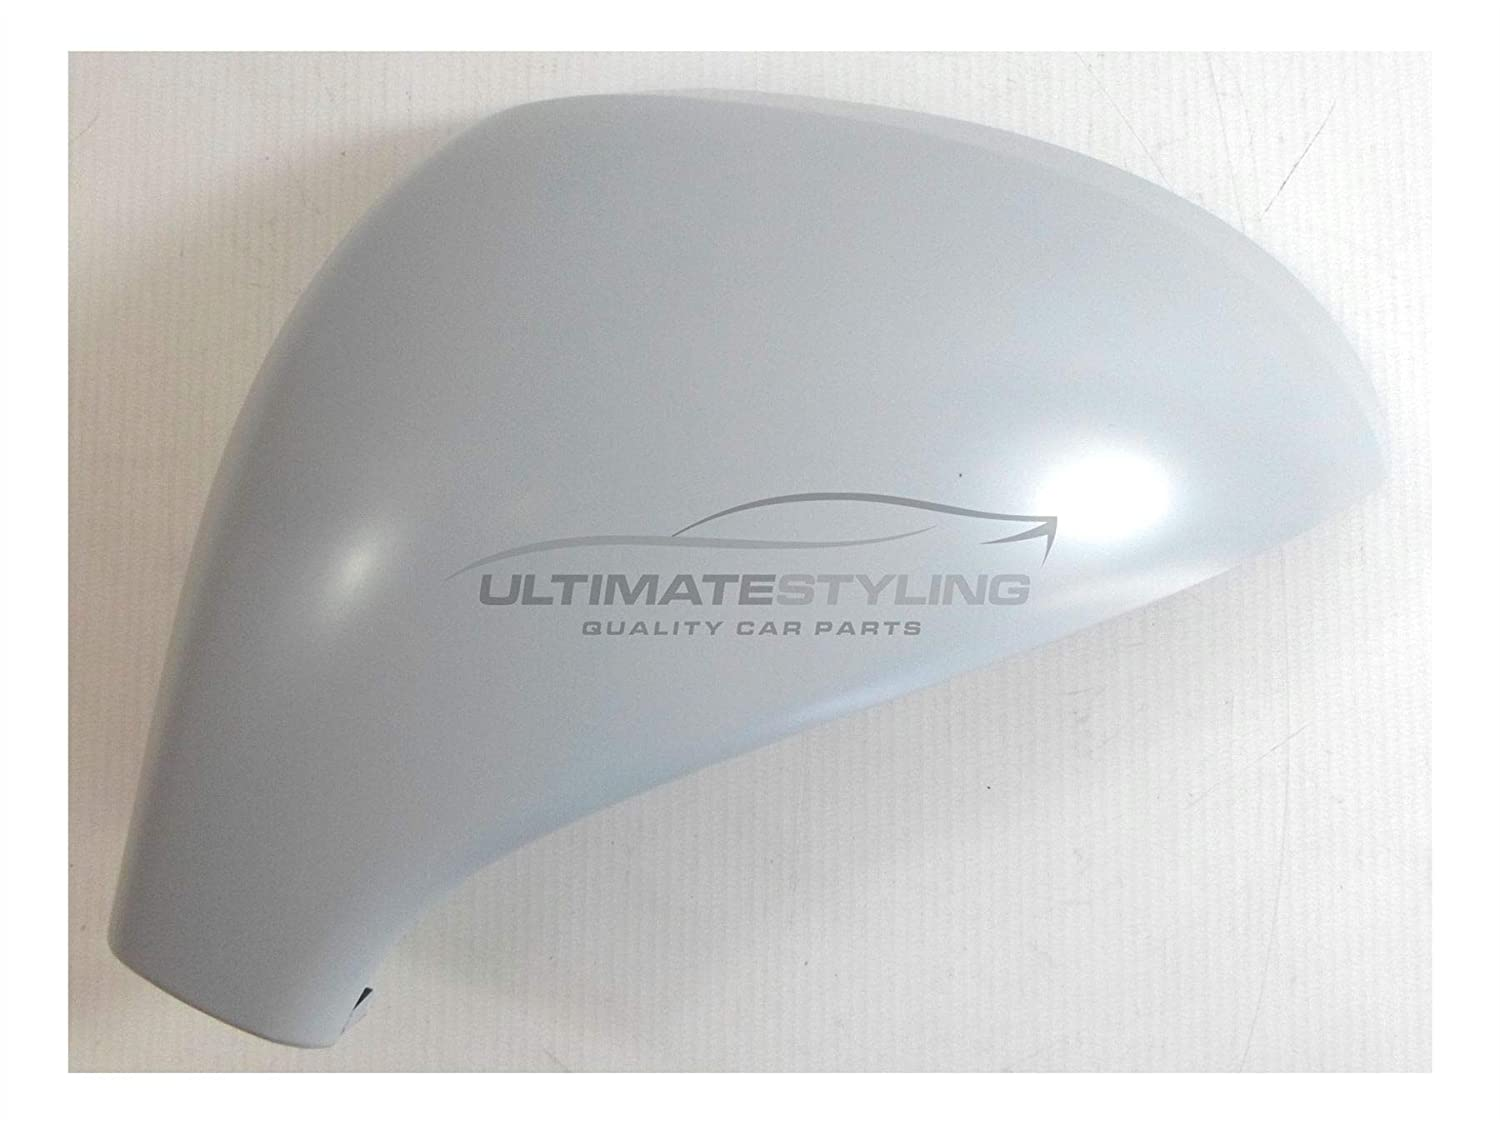 Textured For Passenger Side Ultimate Styling Aftermarket Replacement Wing Mirror Cover Cap Colour Of Cover Black LH Left Hand Side